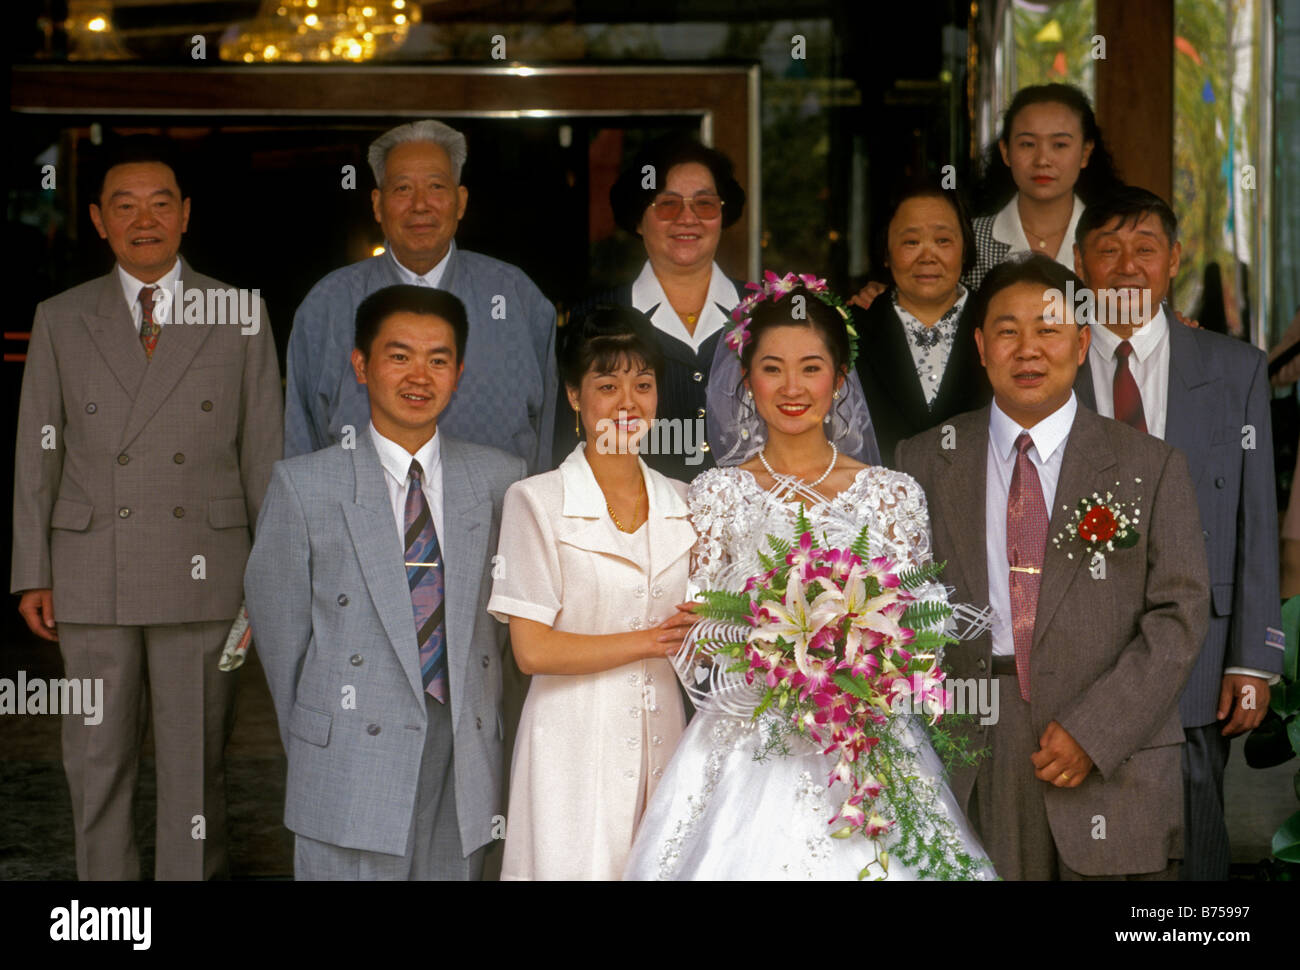 Chinese bride and groom, family members, family portrait, Chinese wedding, wedding, wedding reception, Kunming, - Stock Image